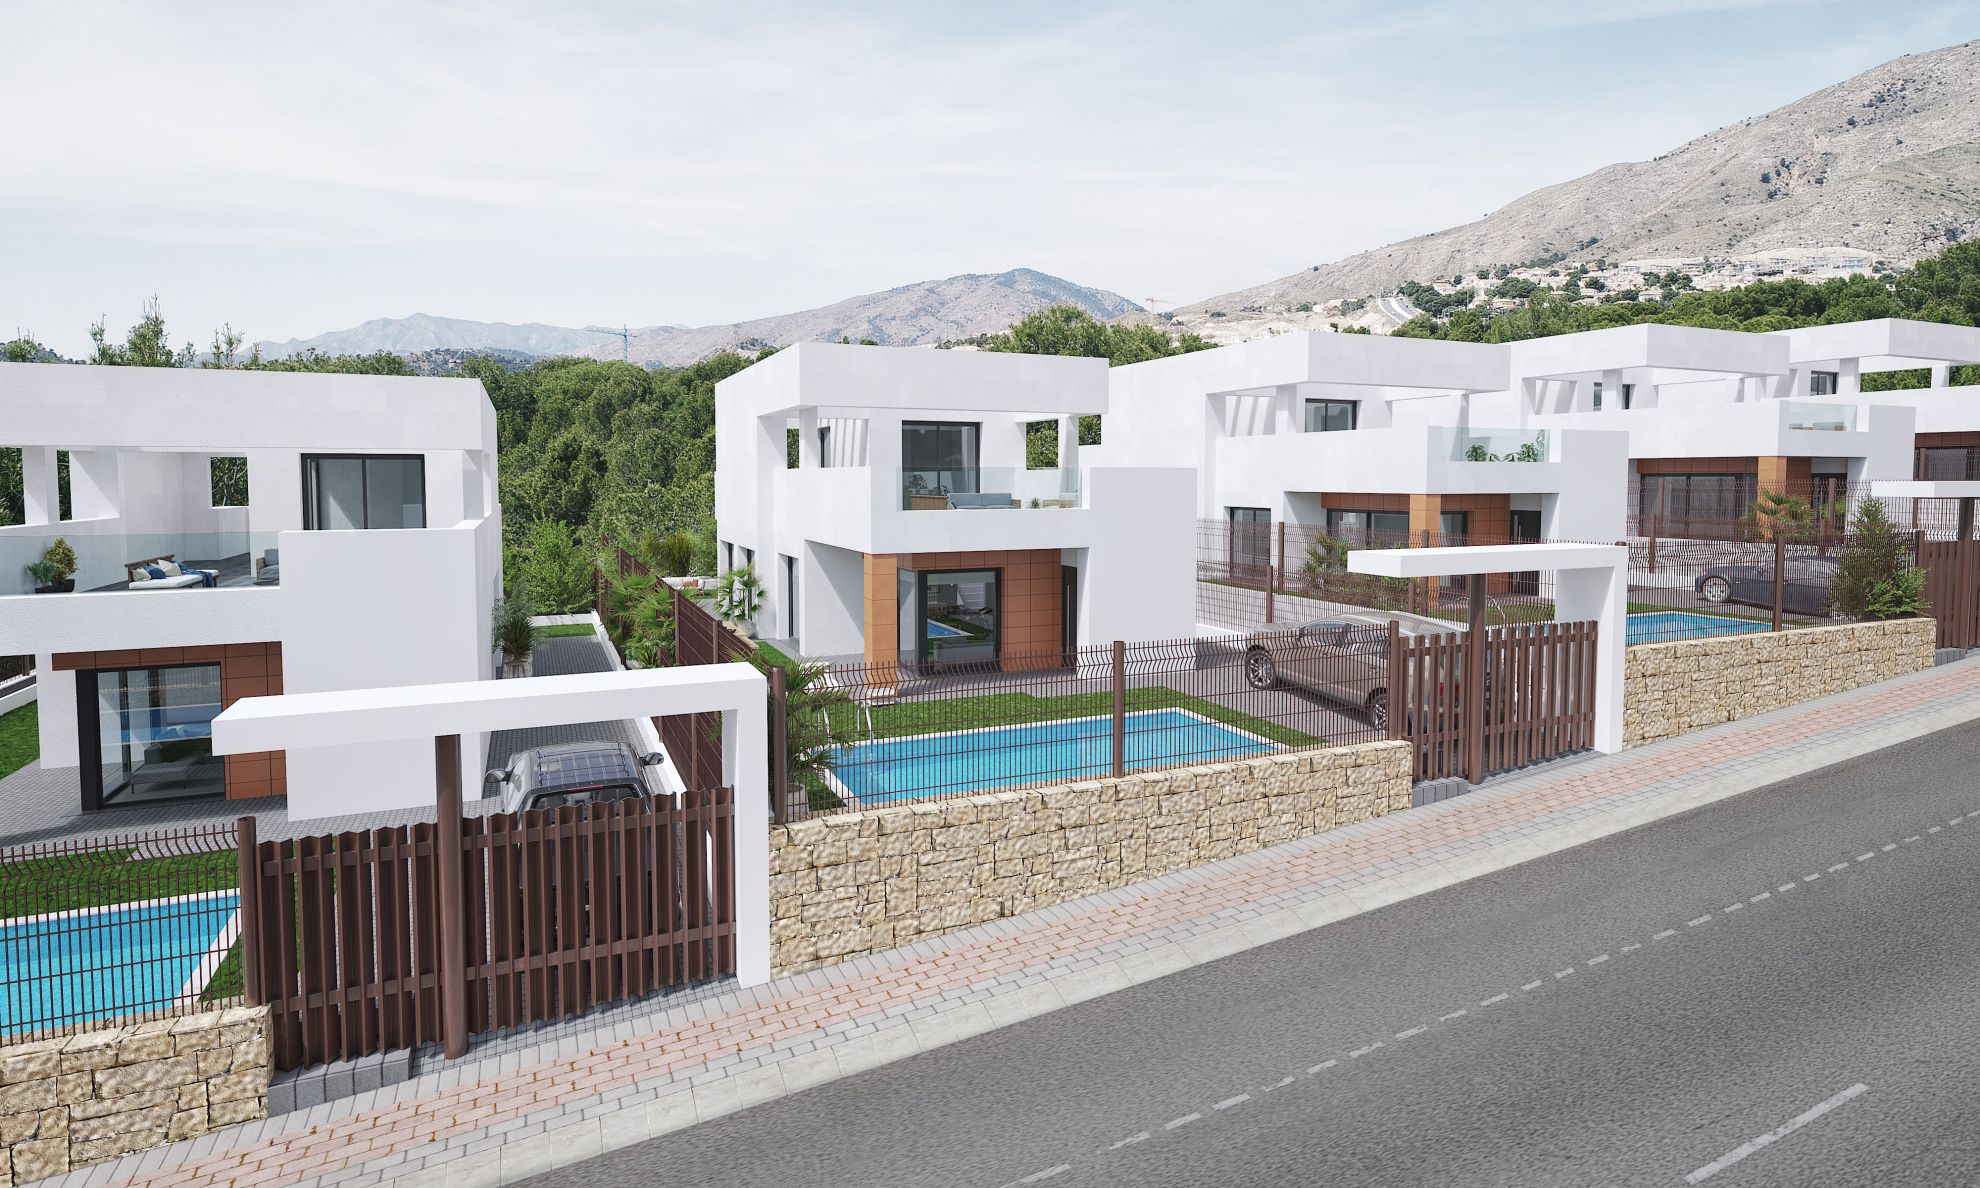 Villas unifamiliares en Finestrat 8